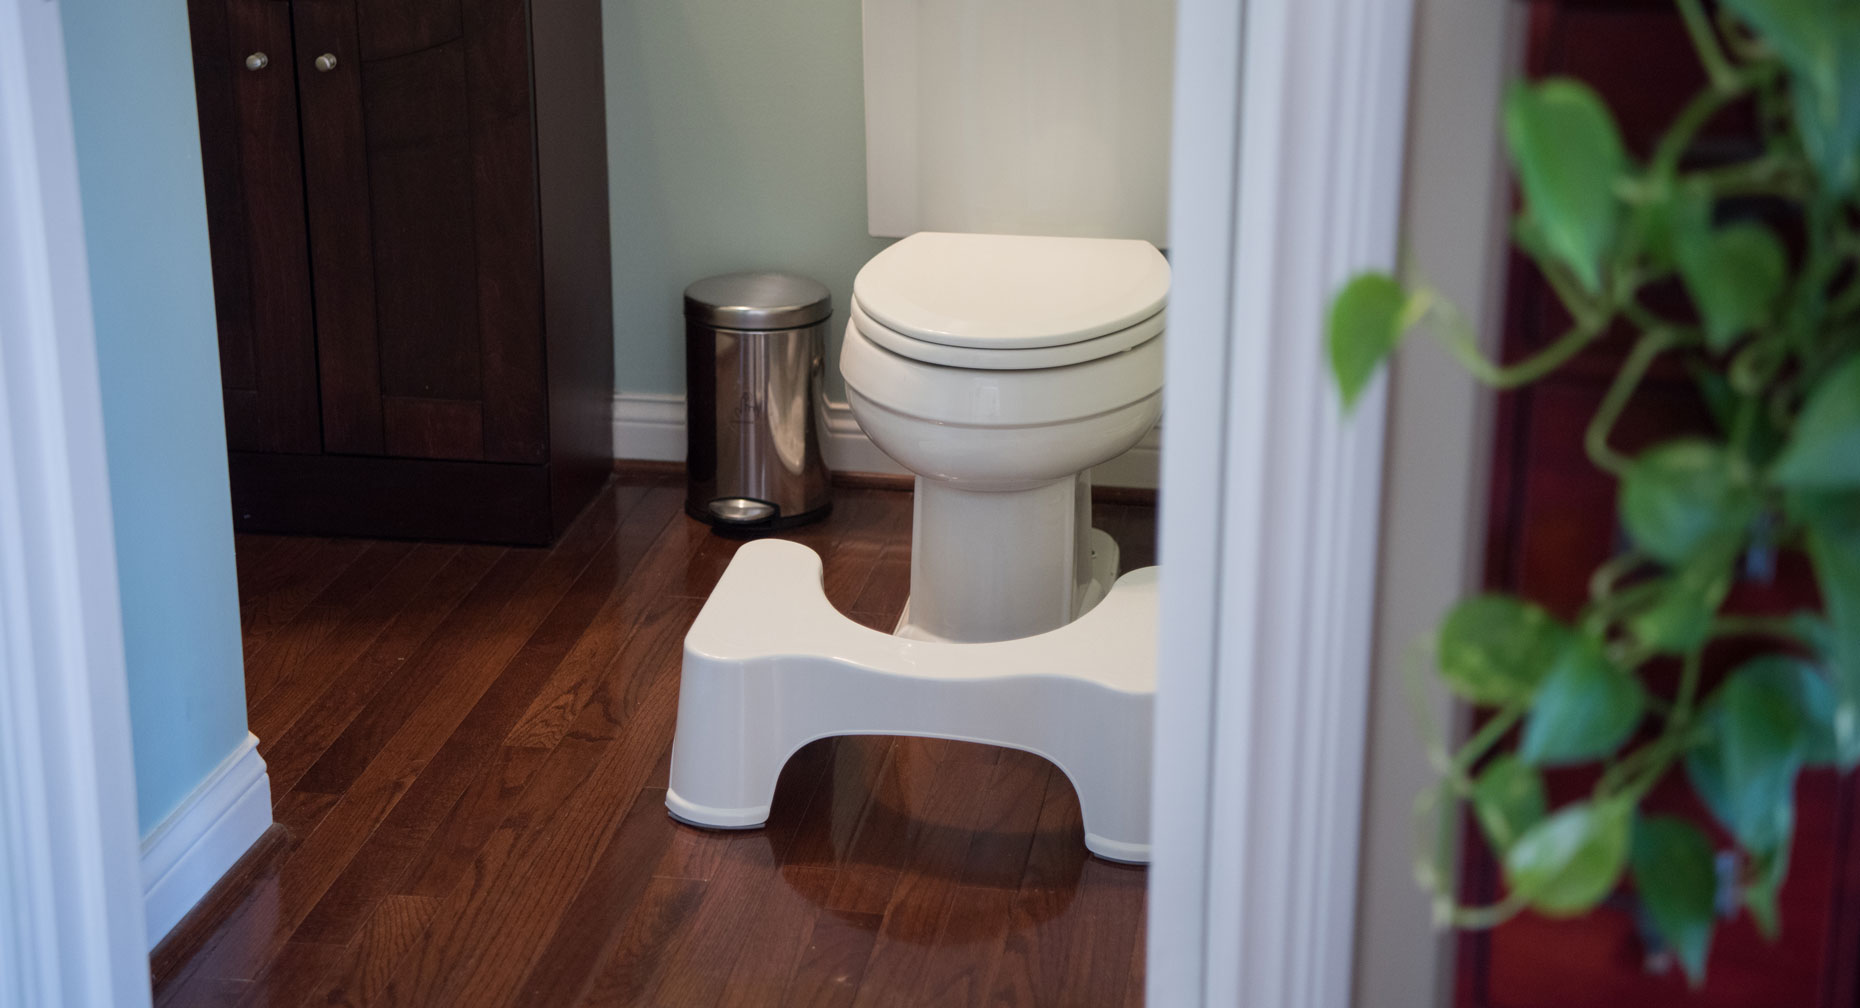 Squatty Potty large